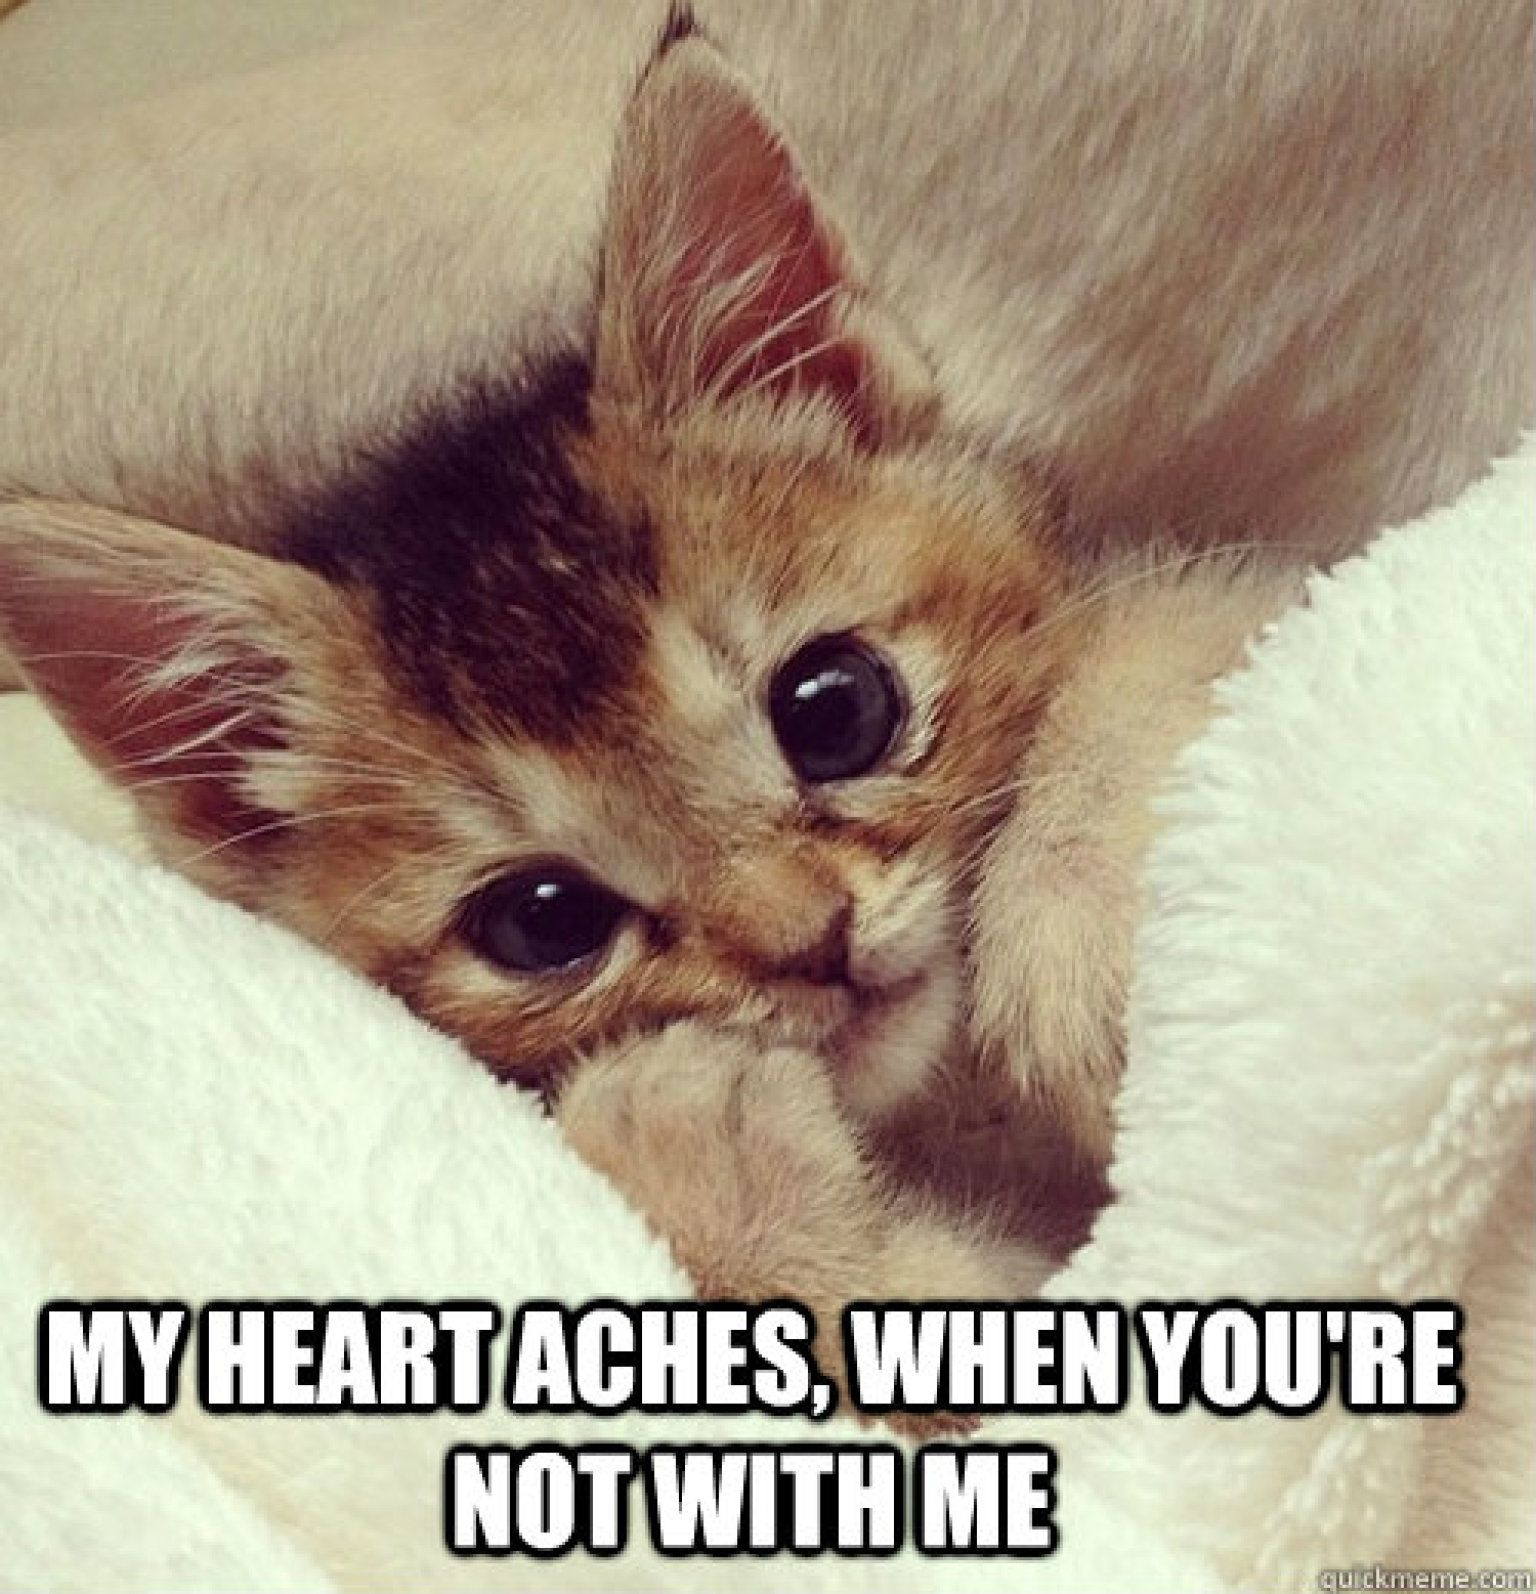 Pin By Jbbiggdogg1975 On L 3ve Cats Kittens Cutest Cute Animals Baby Animals